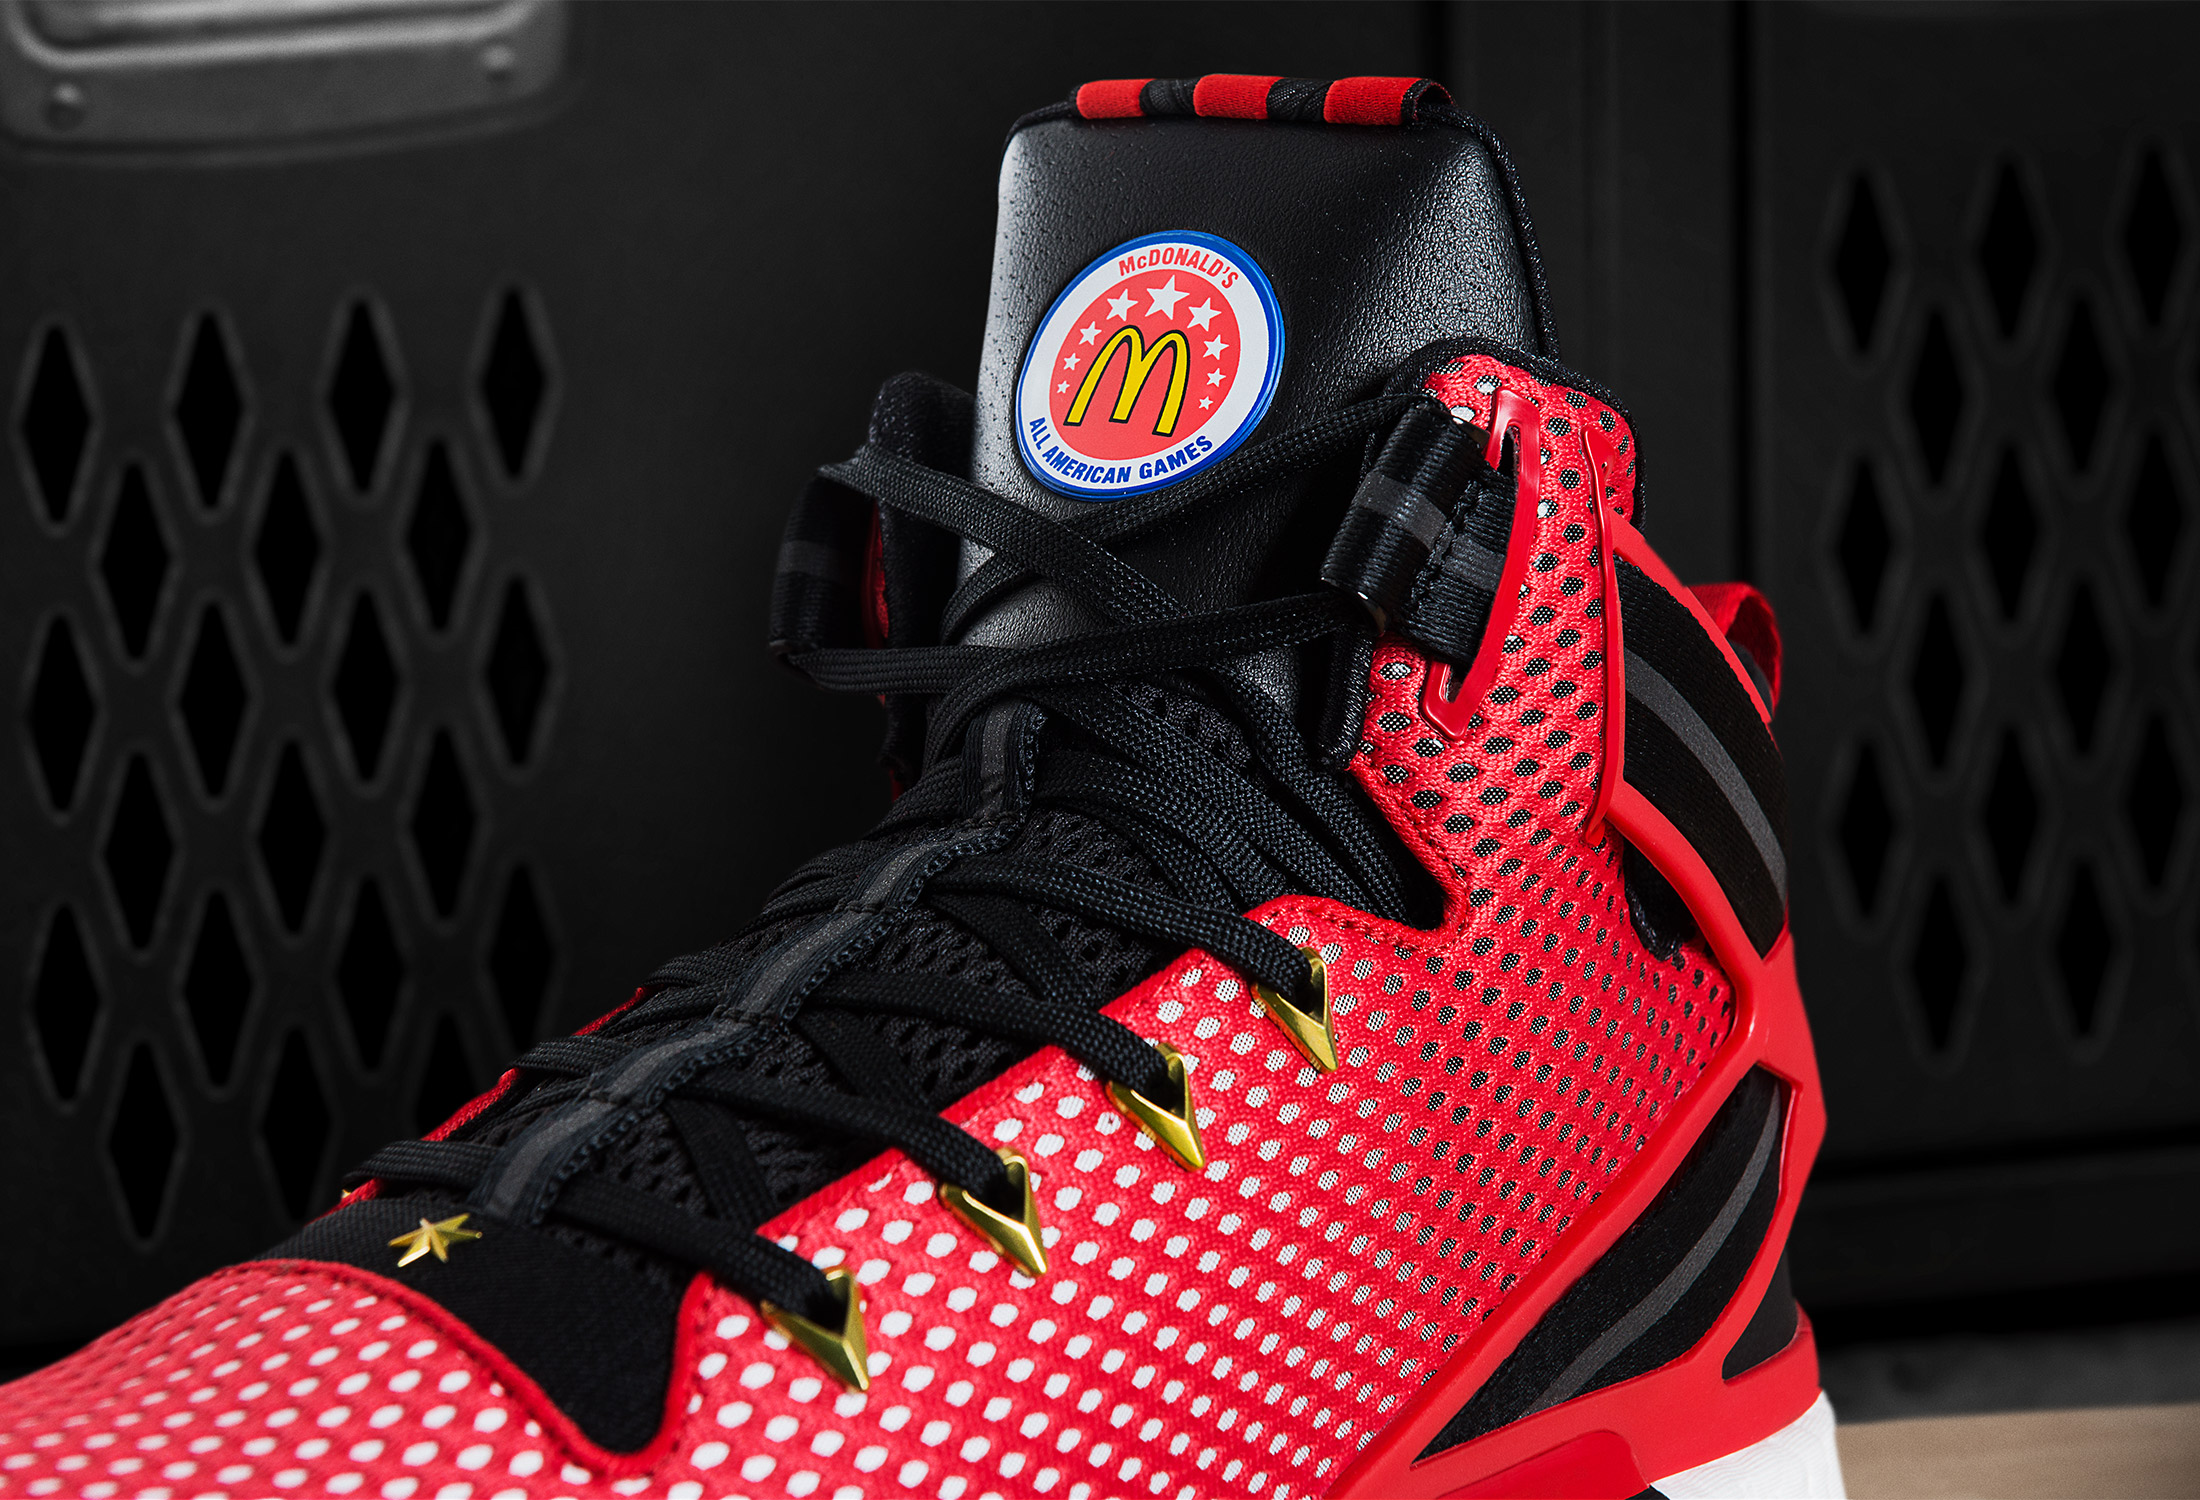 sports shoes a0415 6da8e ... adidas Unveils Uniform Collection for 2016 McDonald¹s All American  Games-4 ... adidas McDonalds All American D Rose 5 Boost ...